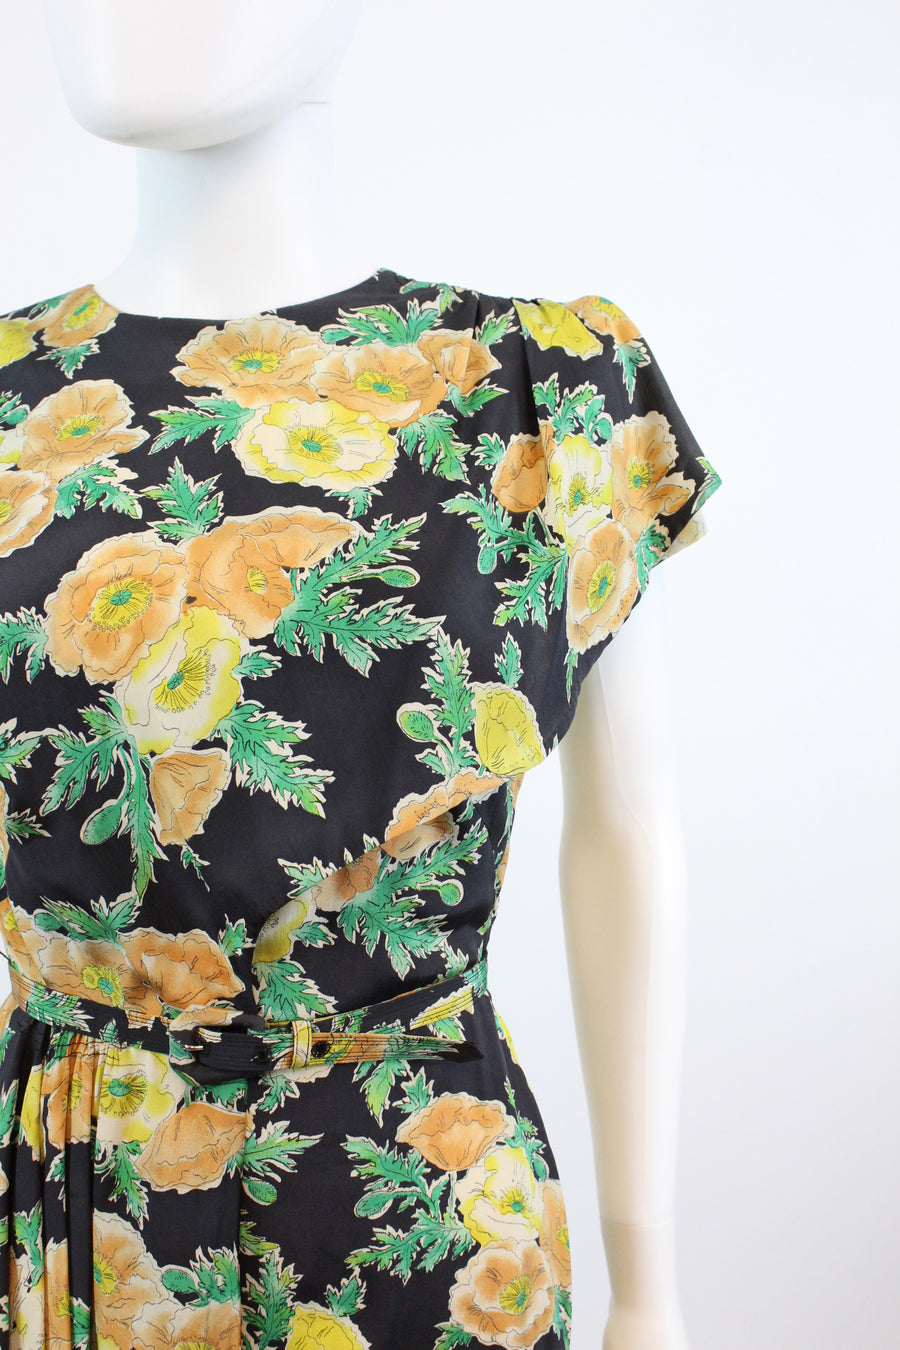 1940s iceland poppy print dress xs | vintage rayon dress | new in